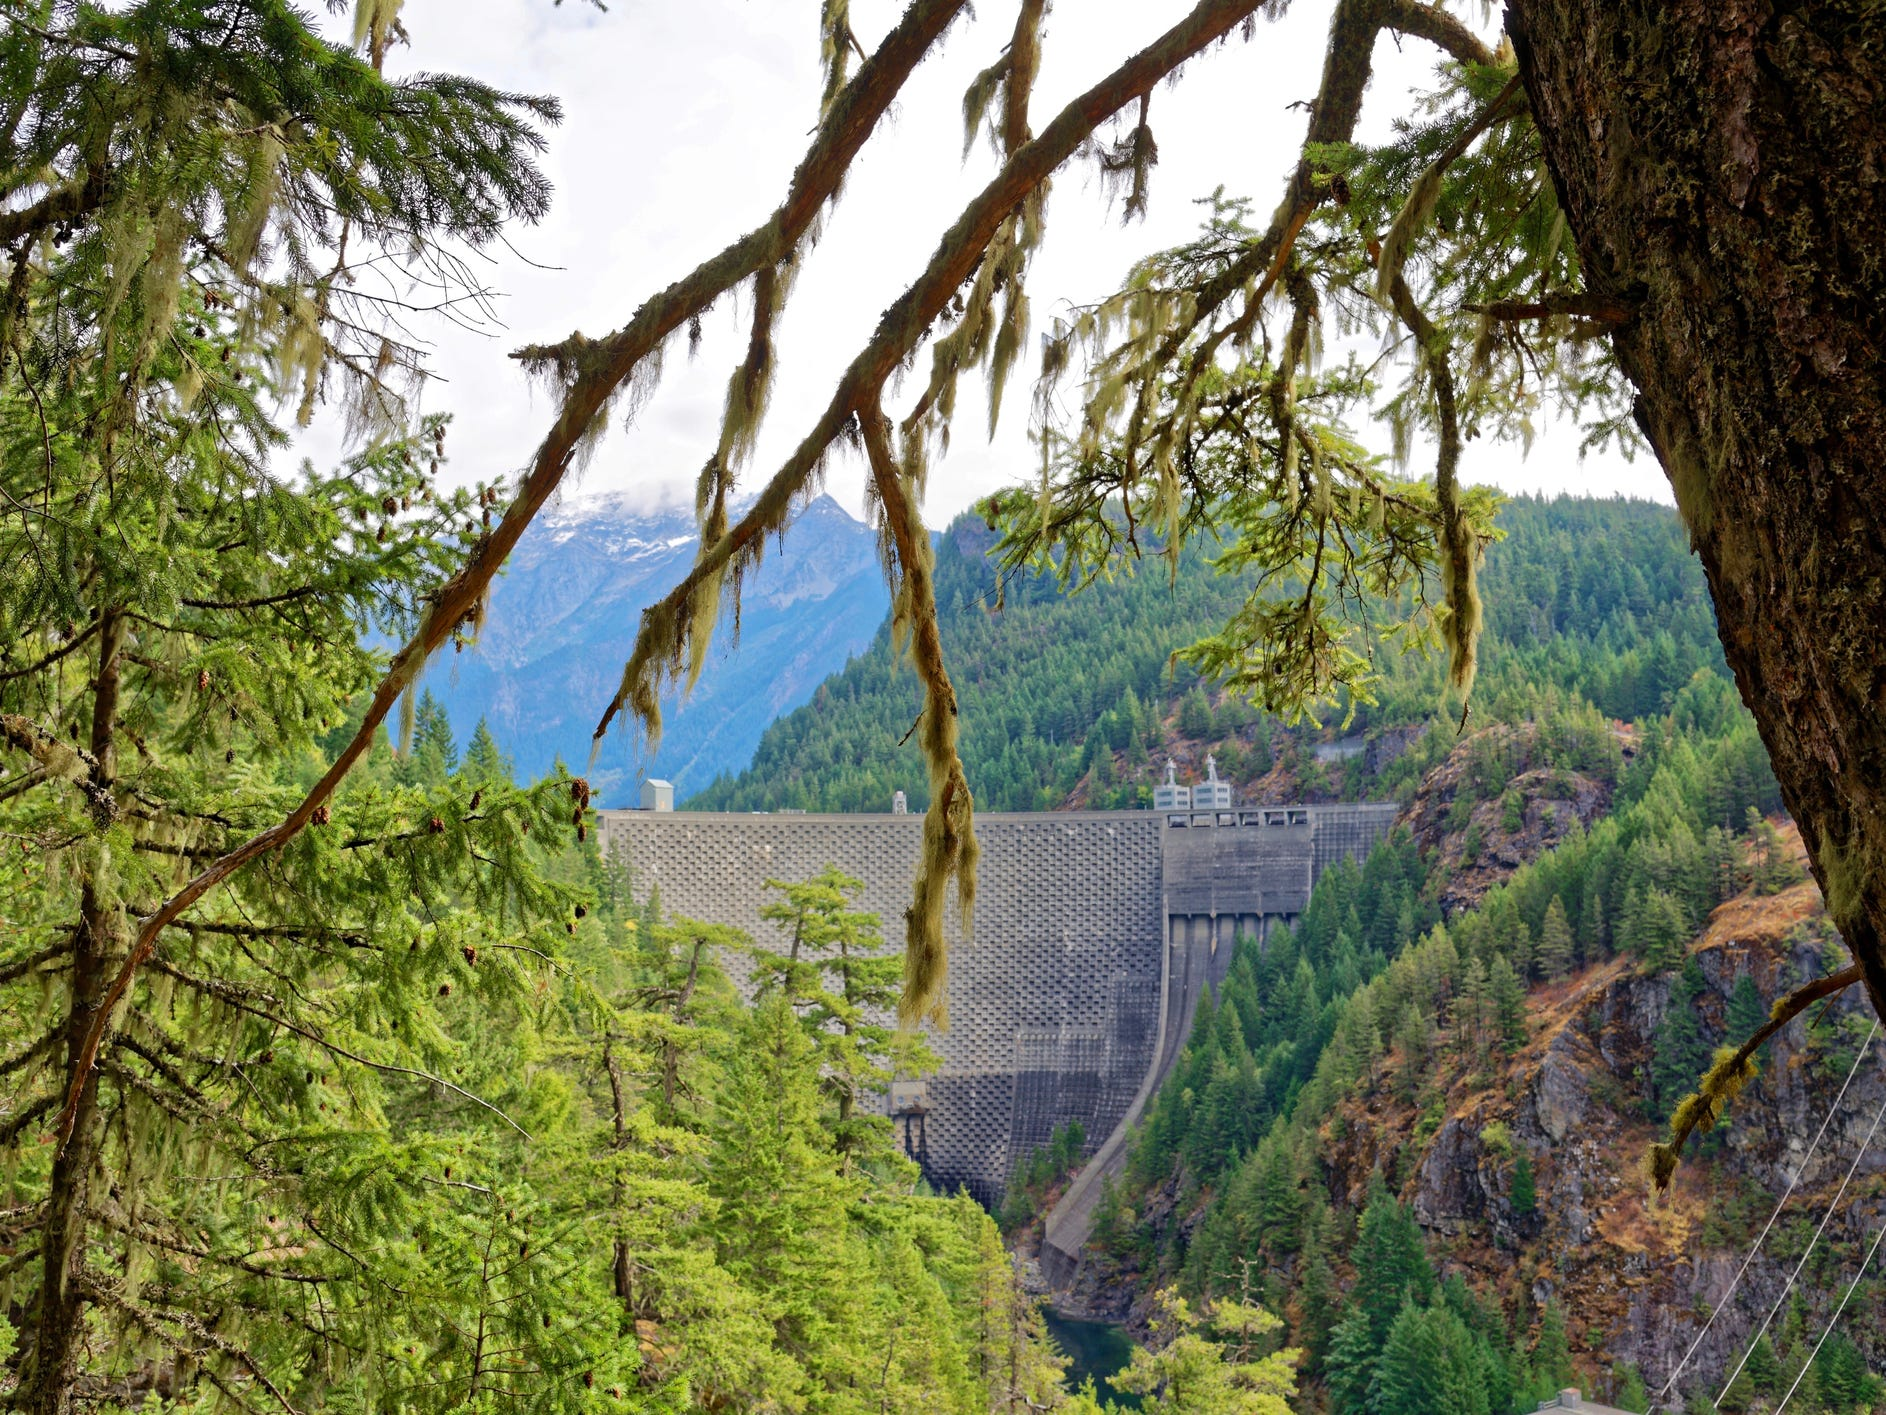 Ross Dam in Washington.